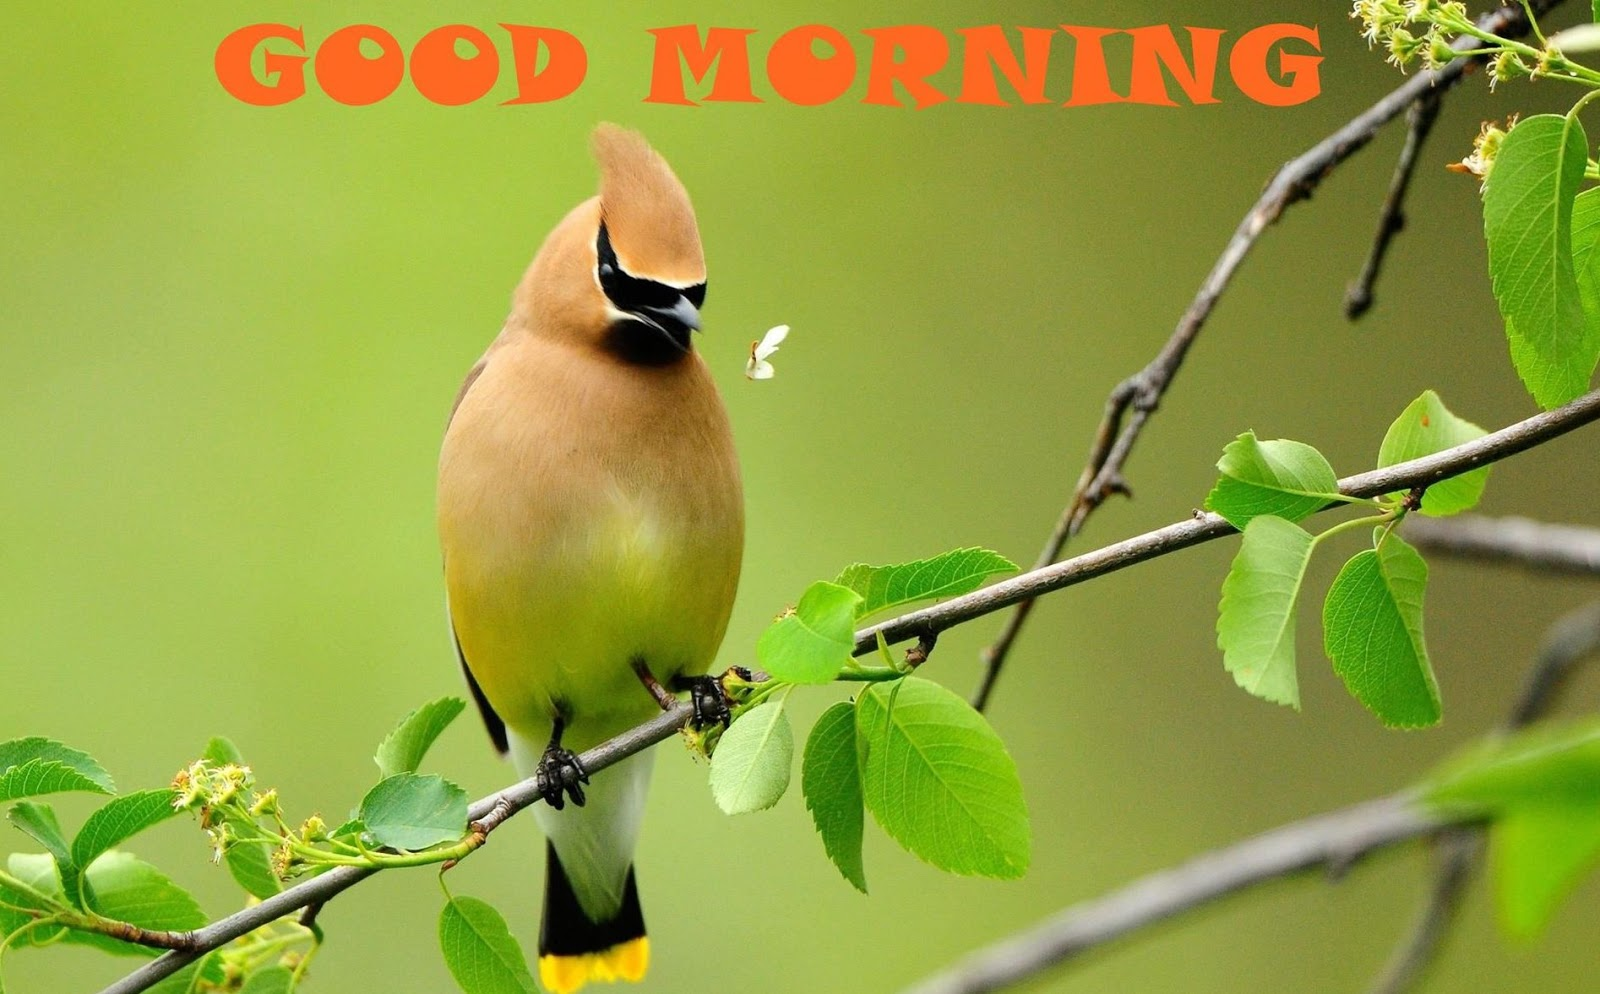 Good Morning Cute Bird HD Wallpaper